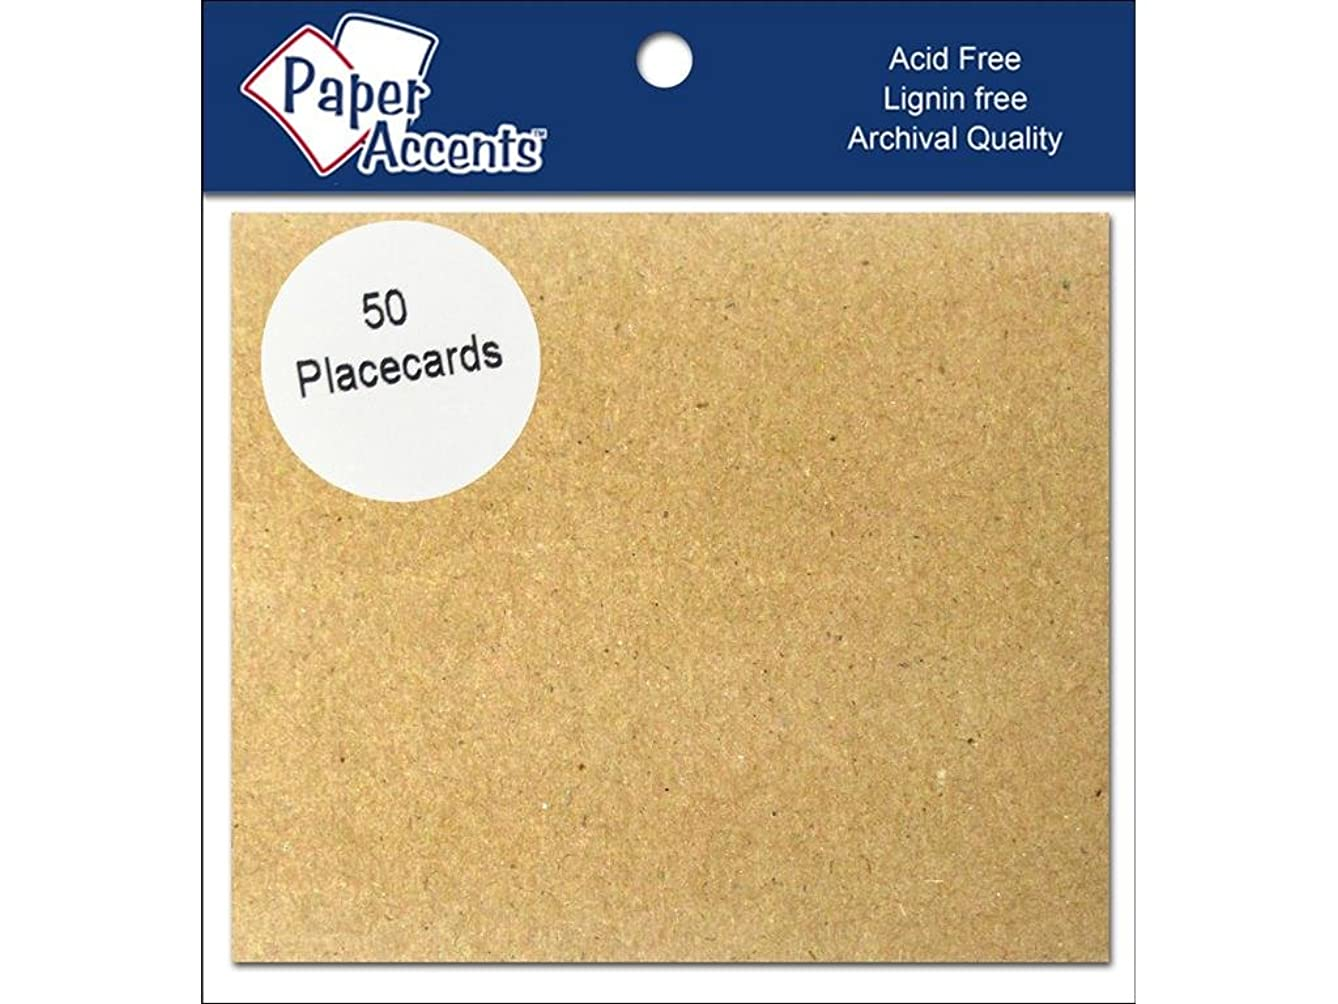 Accent Design Paper Accents 50pc Placecards Brown Bag